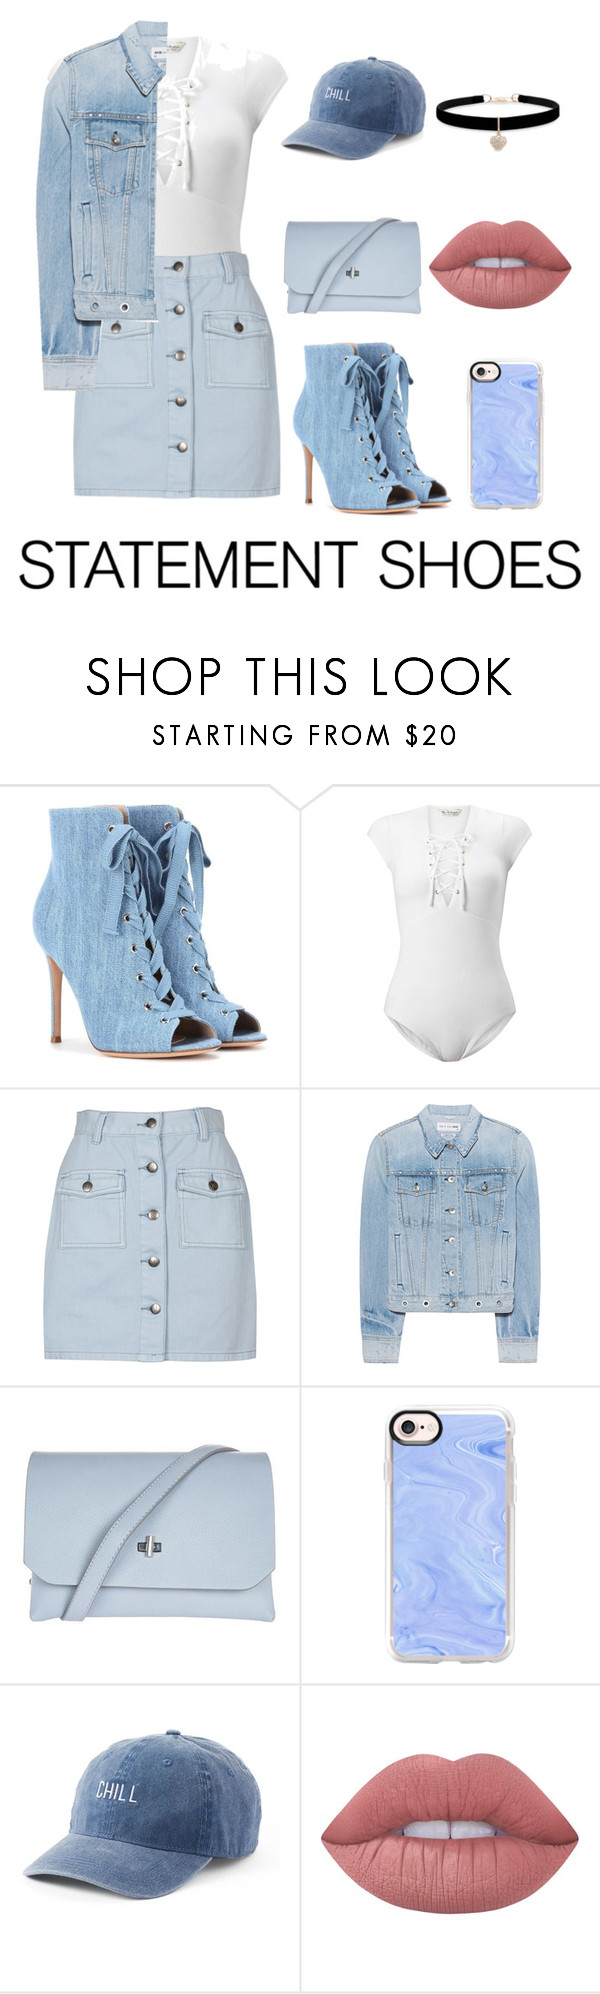 """""""Daring denim"""" by typicallylena ❤ liked on Polyvore featuring Gianvito Rossi, Miss Selfridge, MINKPINK, rag & bone, Topshop, Casetify, SO, Lime Crime, Betsey Johnson and StreetStyle"""